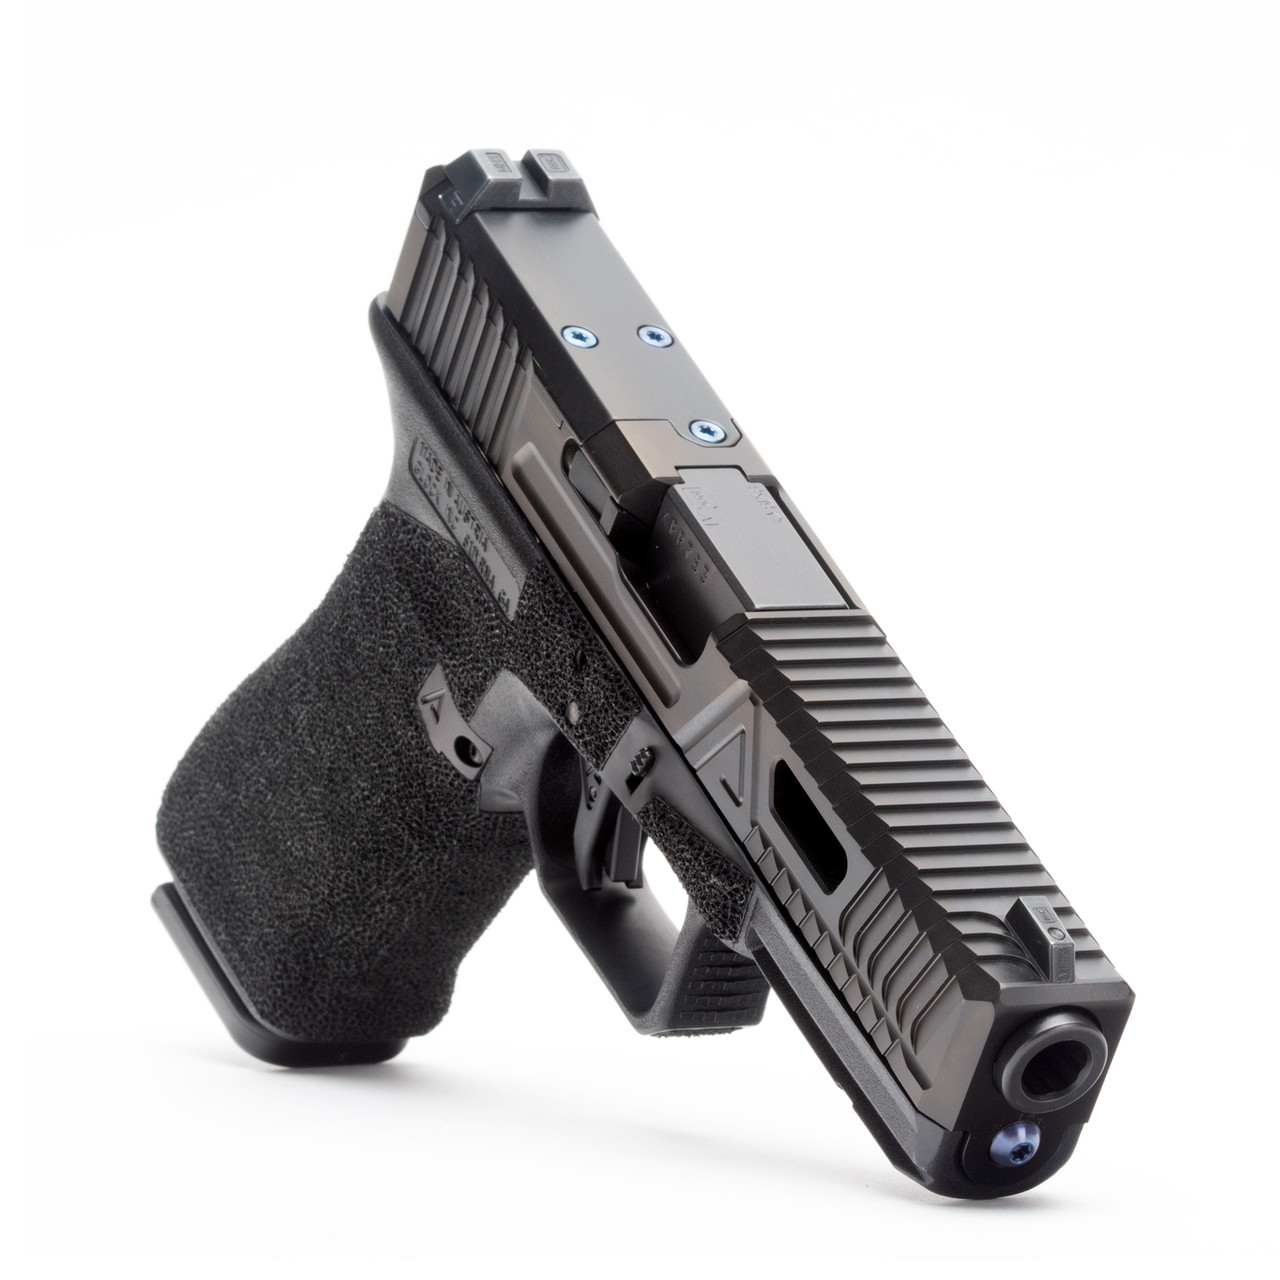 Agency Arms Glock 17 Gen3 Gavel Urban DLC, AOS, Standard Stipple